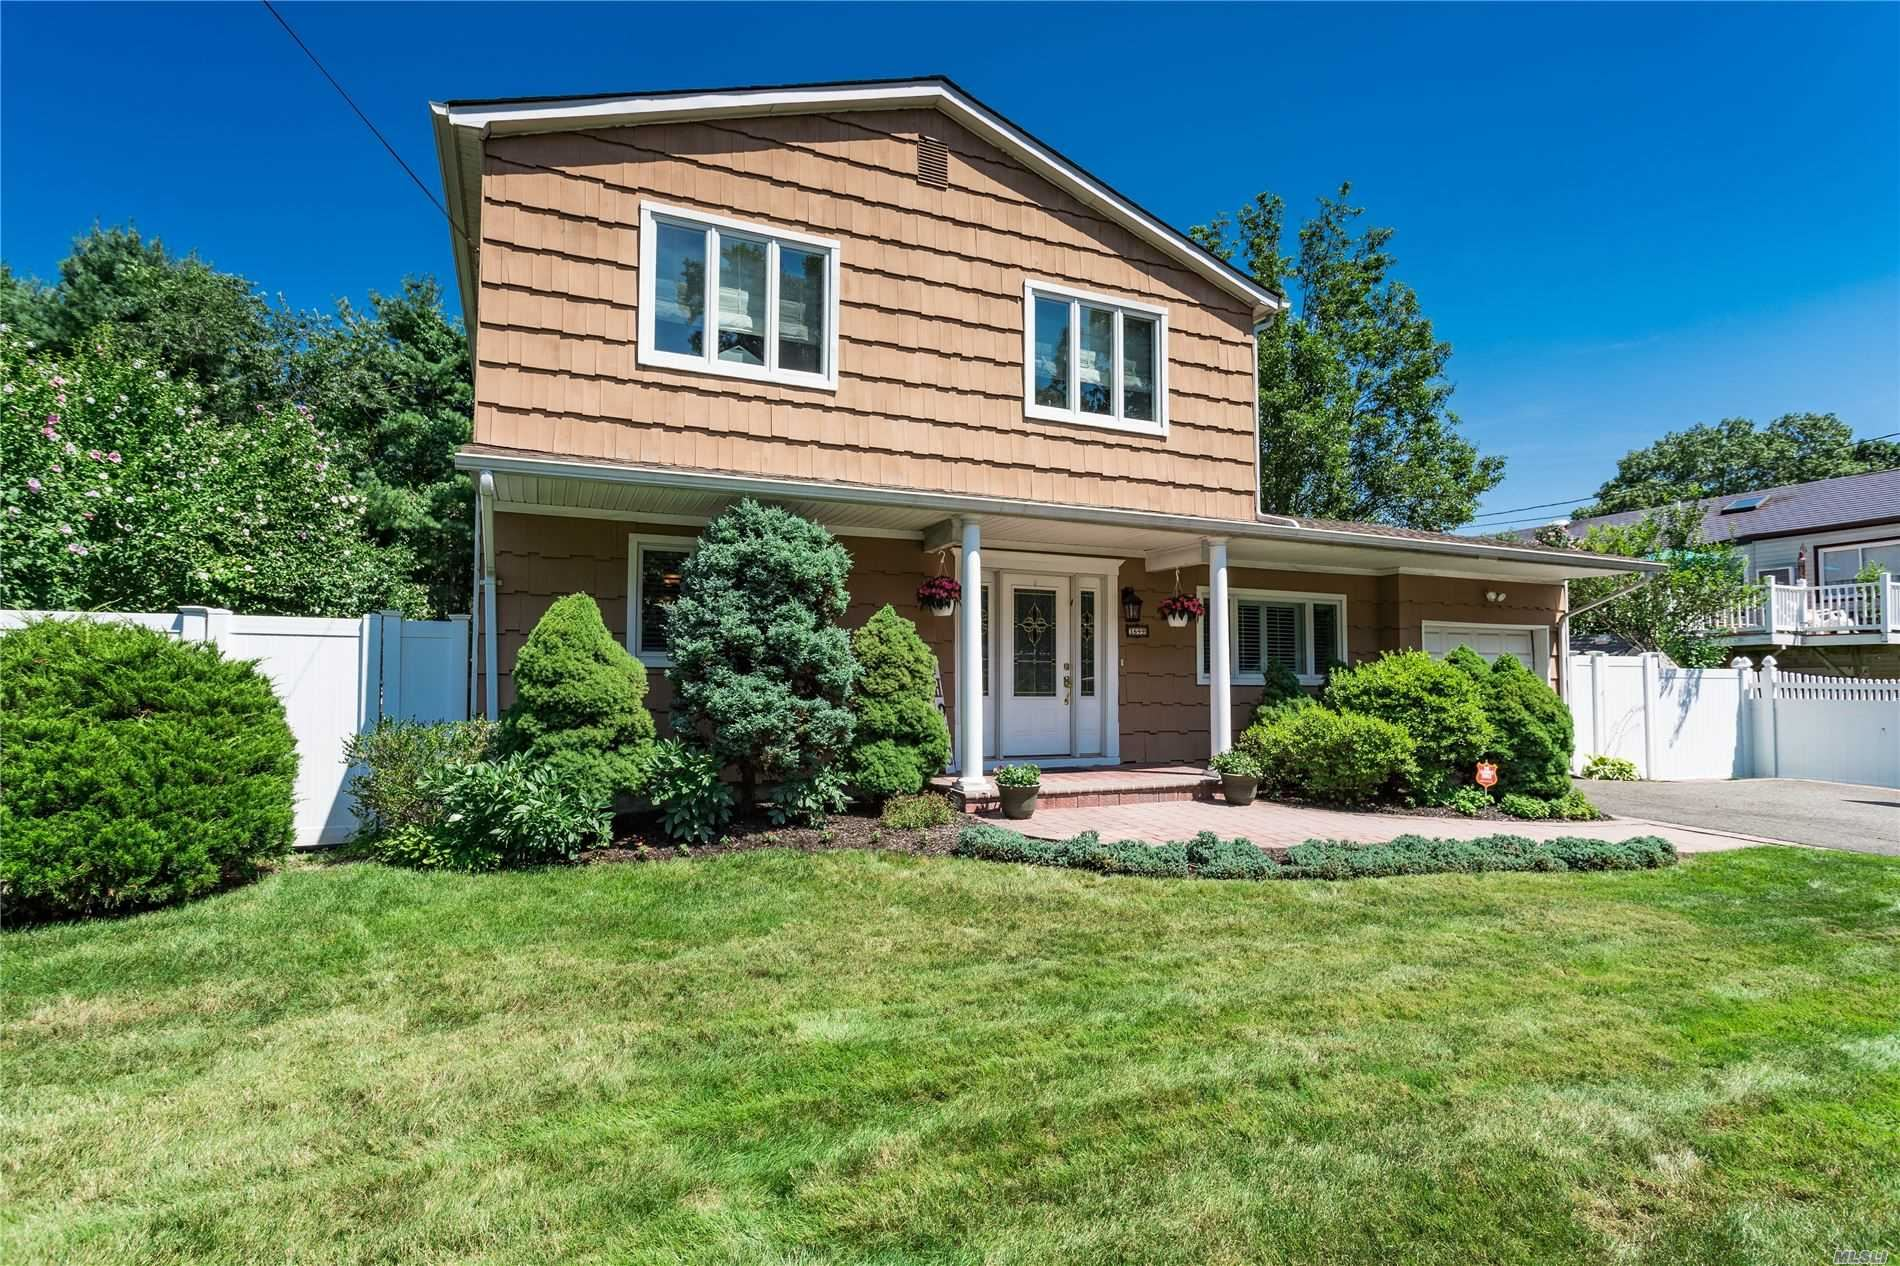 1699 Lincoln Ave, Holbrook, NY 11741 - MLS#: 3236843